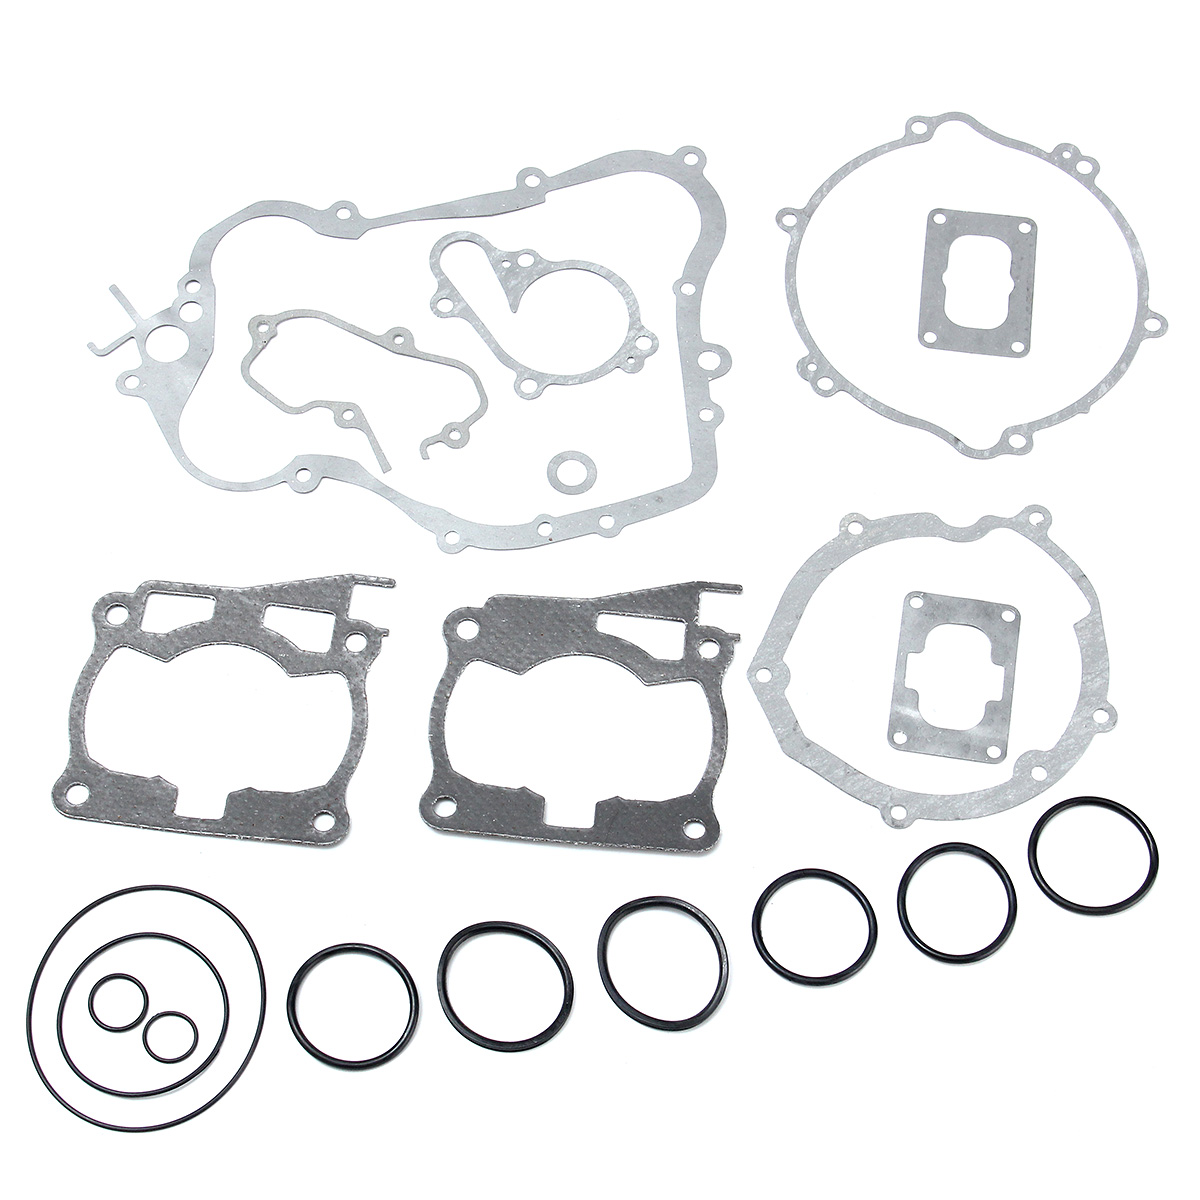 Motorcycle Engine Gasket Kit Set For Yamaha Yz125